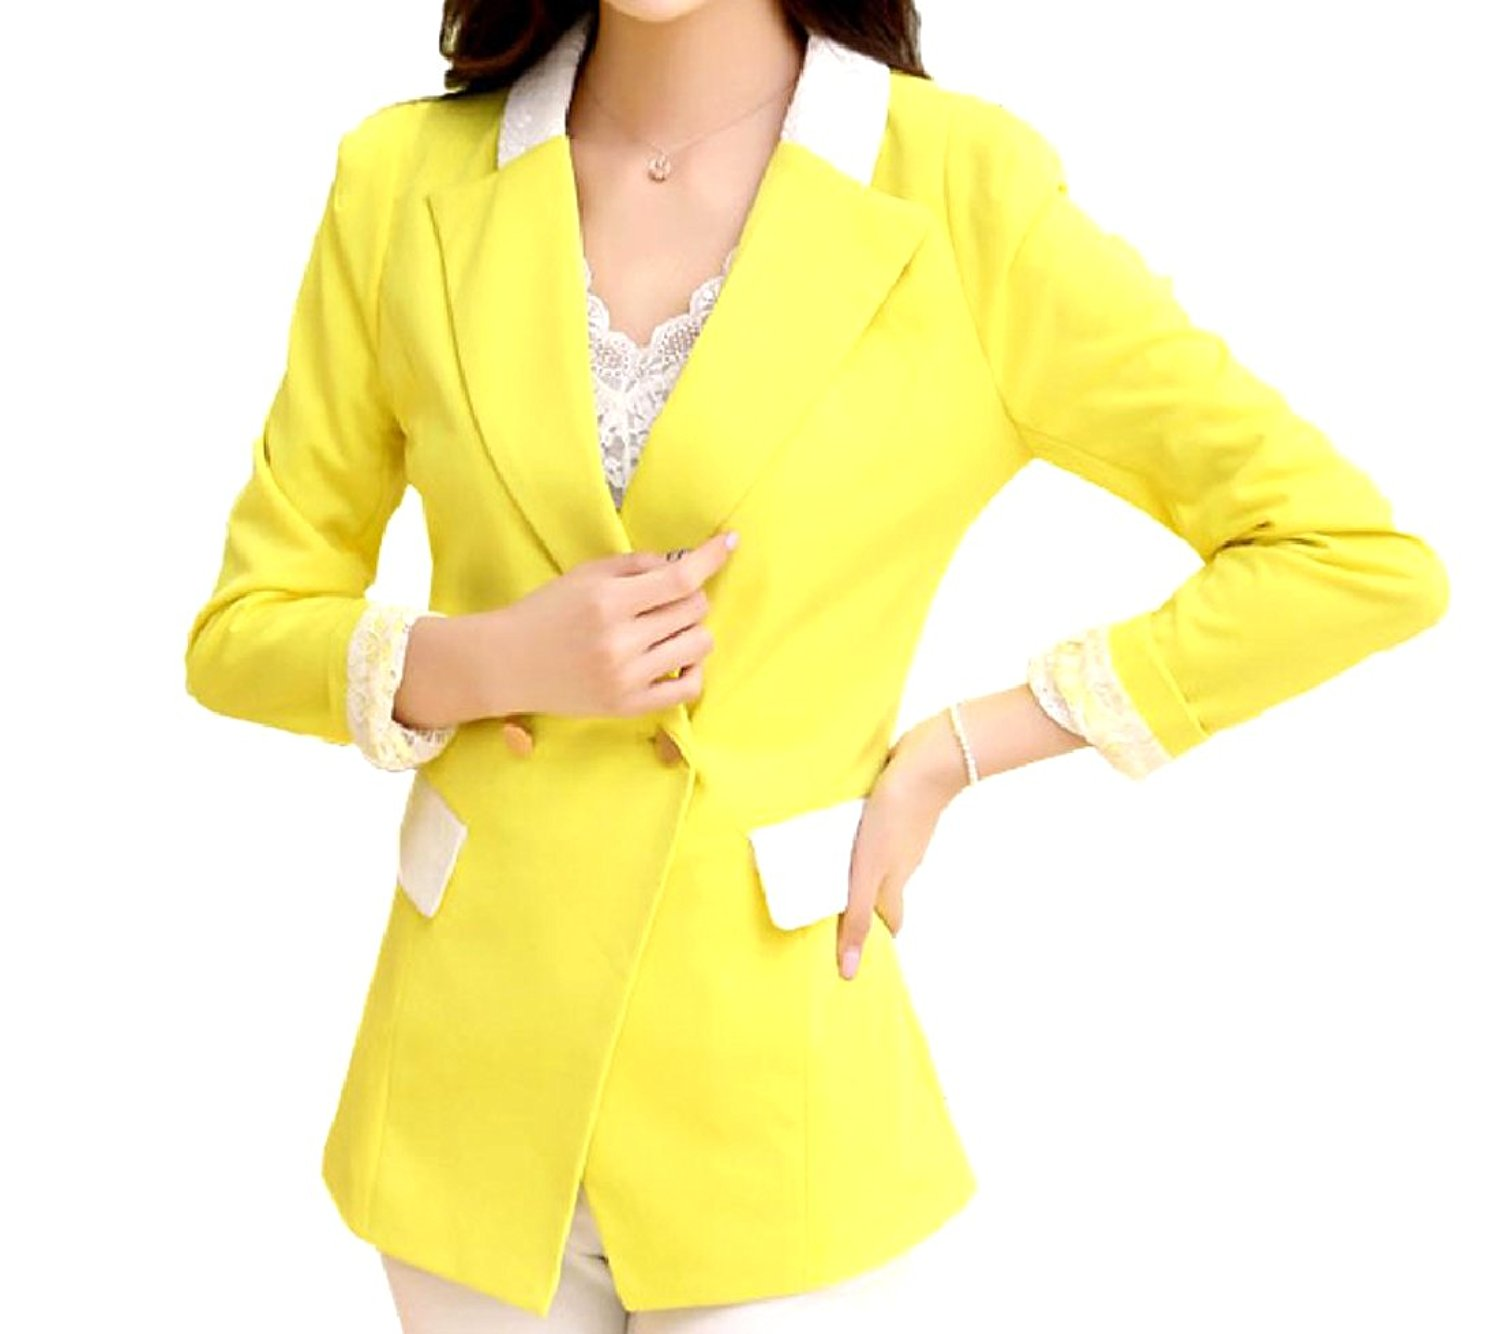 YUNY Women Center Vent Regular Fit Business Suit with Pockets